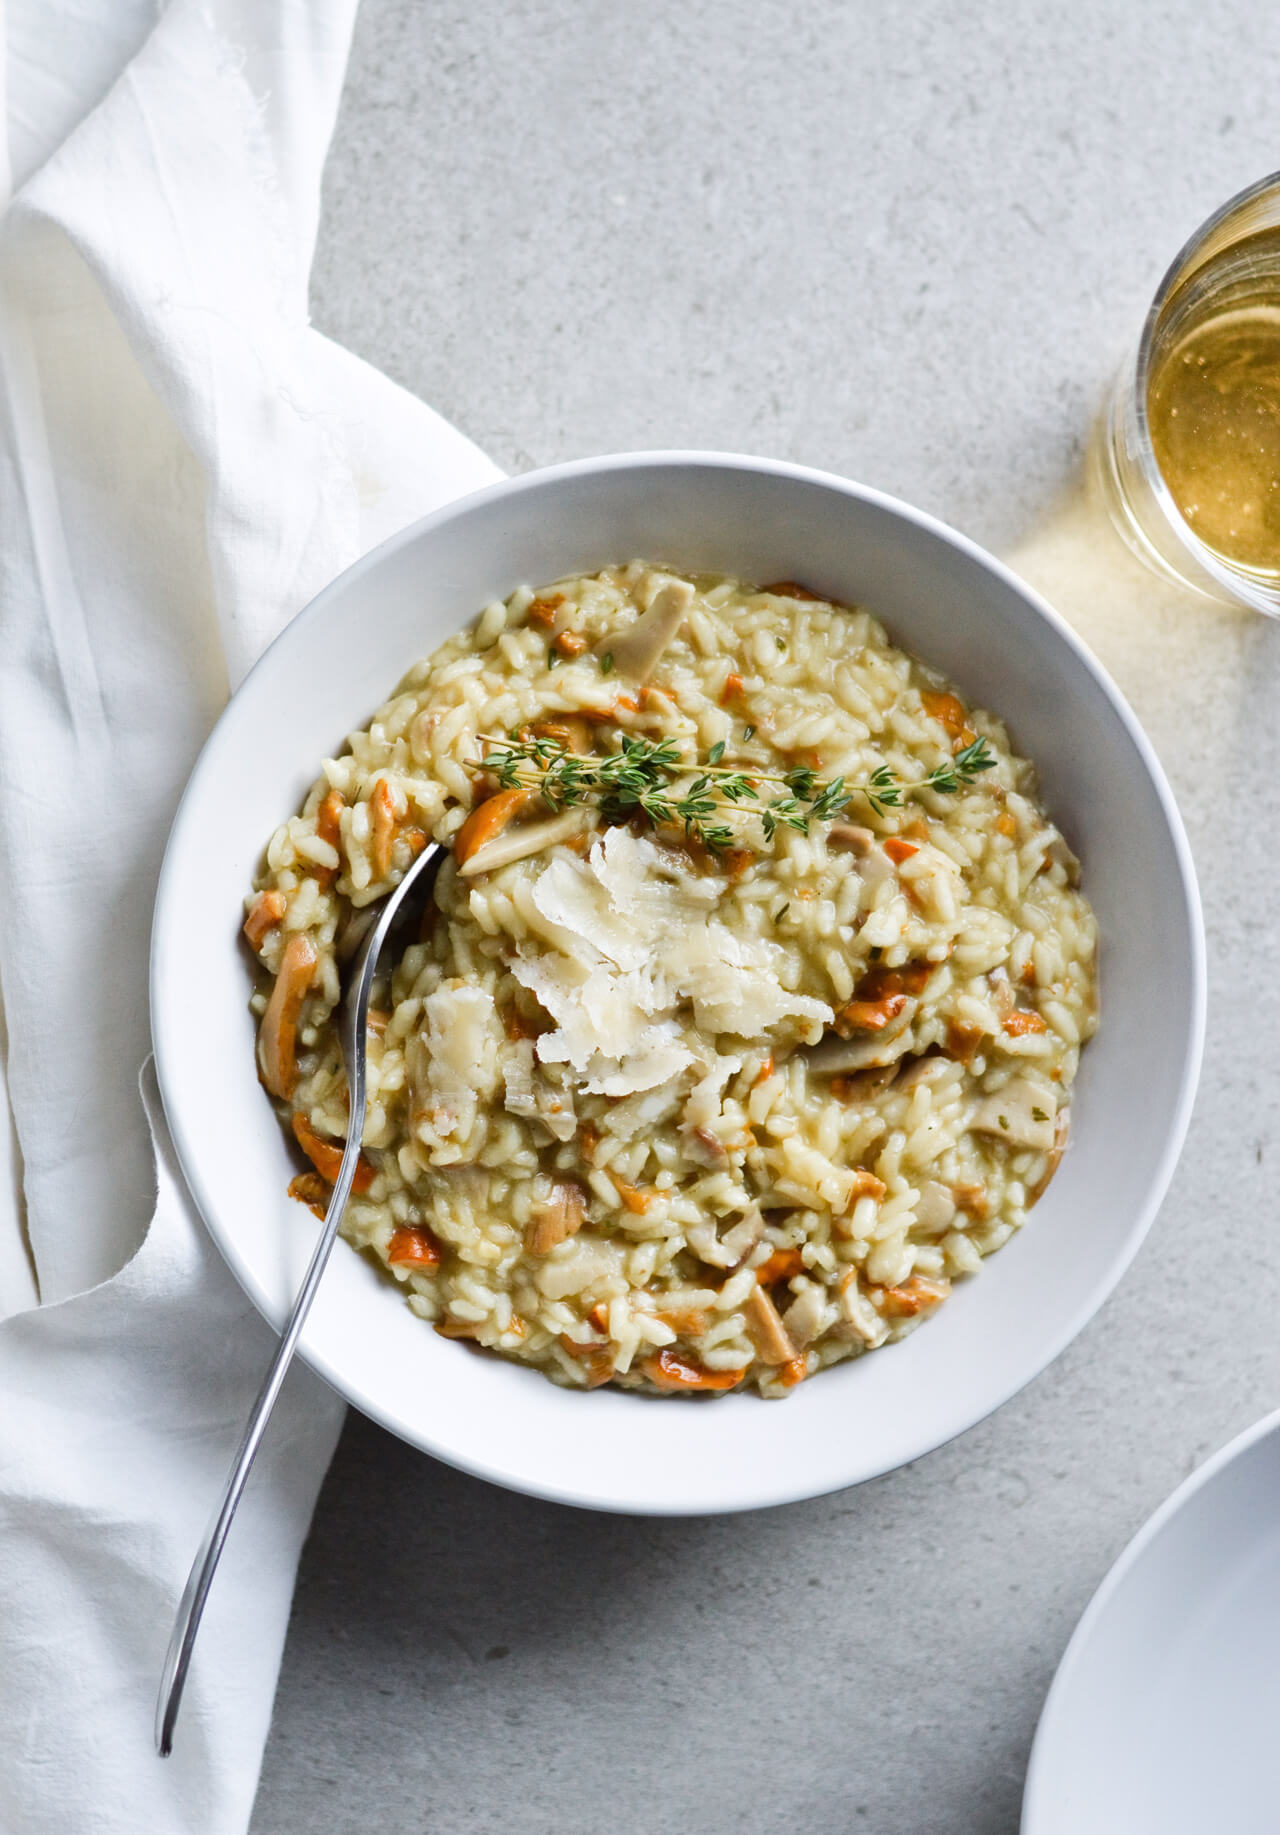 Wonderful wild mushroom magic risotto, inspired by Gilmore Girls! Perfect cozy dinner! Also featured Gilmore Girls recap! | sugarsalted.com